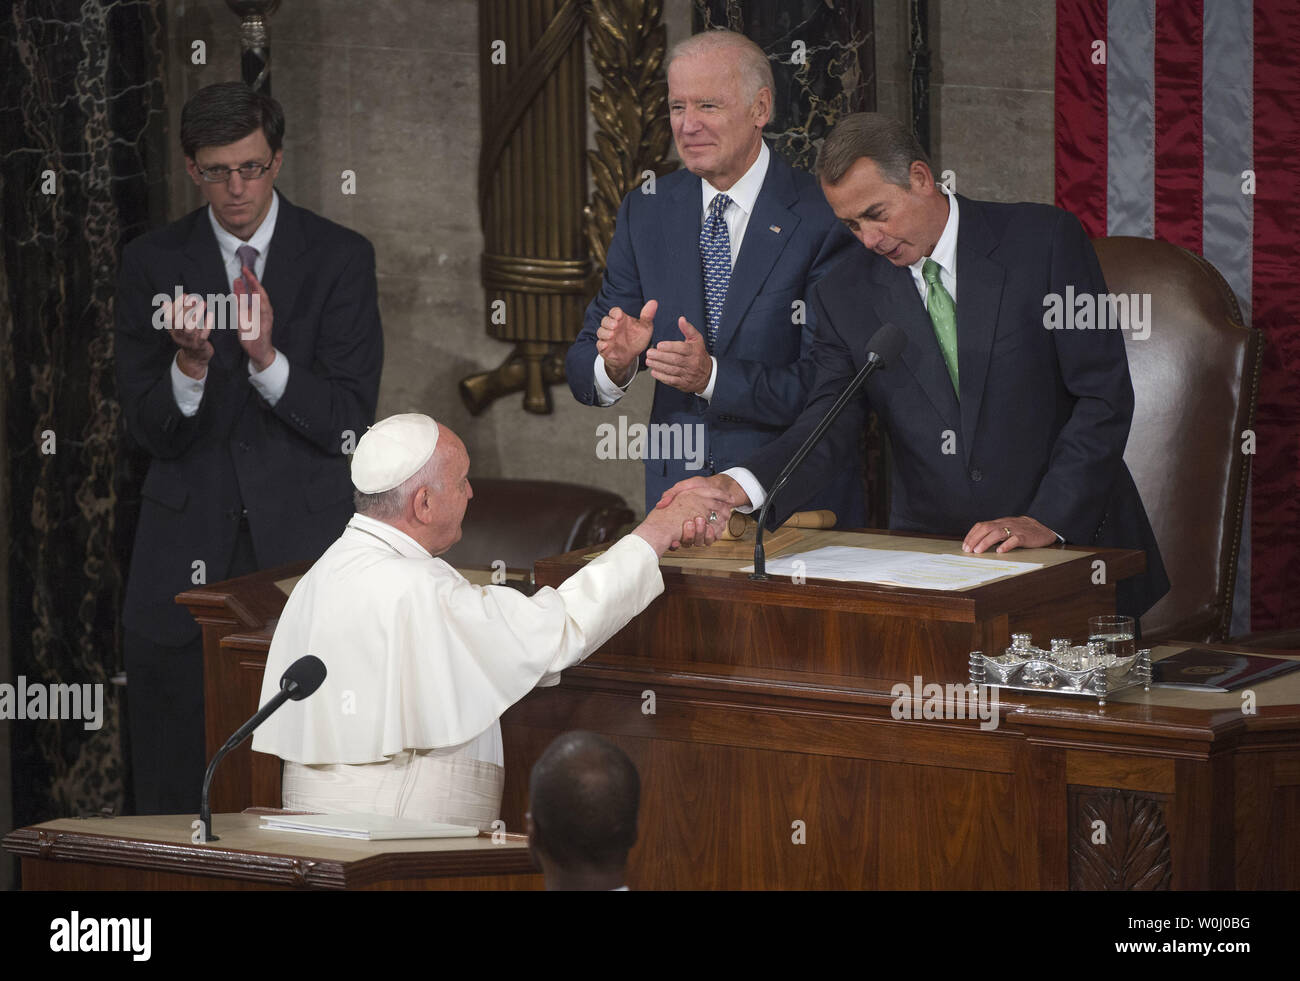 Speaker of the House John Boehner (R-OH) shakes hands with Pope Francis, at the U.S. Capitol Building in Washington, D.C. on September 24, 2015. Boehner announced today, September 25, that he will step down as Speaker and resign from Congress at the end of October. Boehner said he decided this morning to announce his plans to resign from Congress. Photo by Kevin Dietsch/UPI - Stock Image